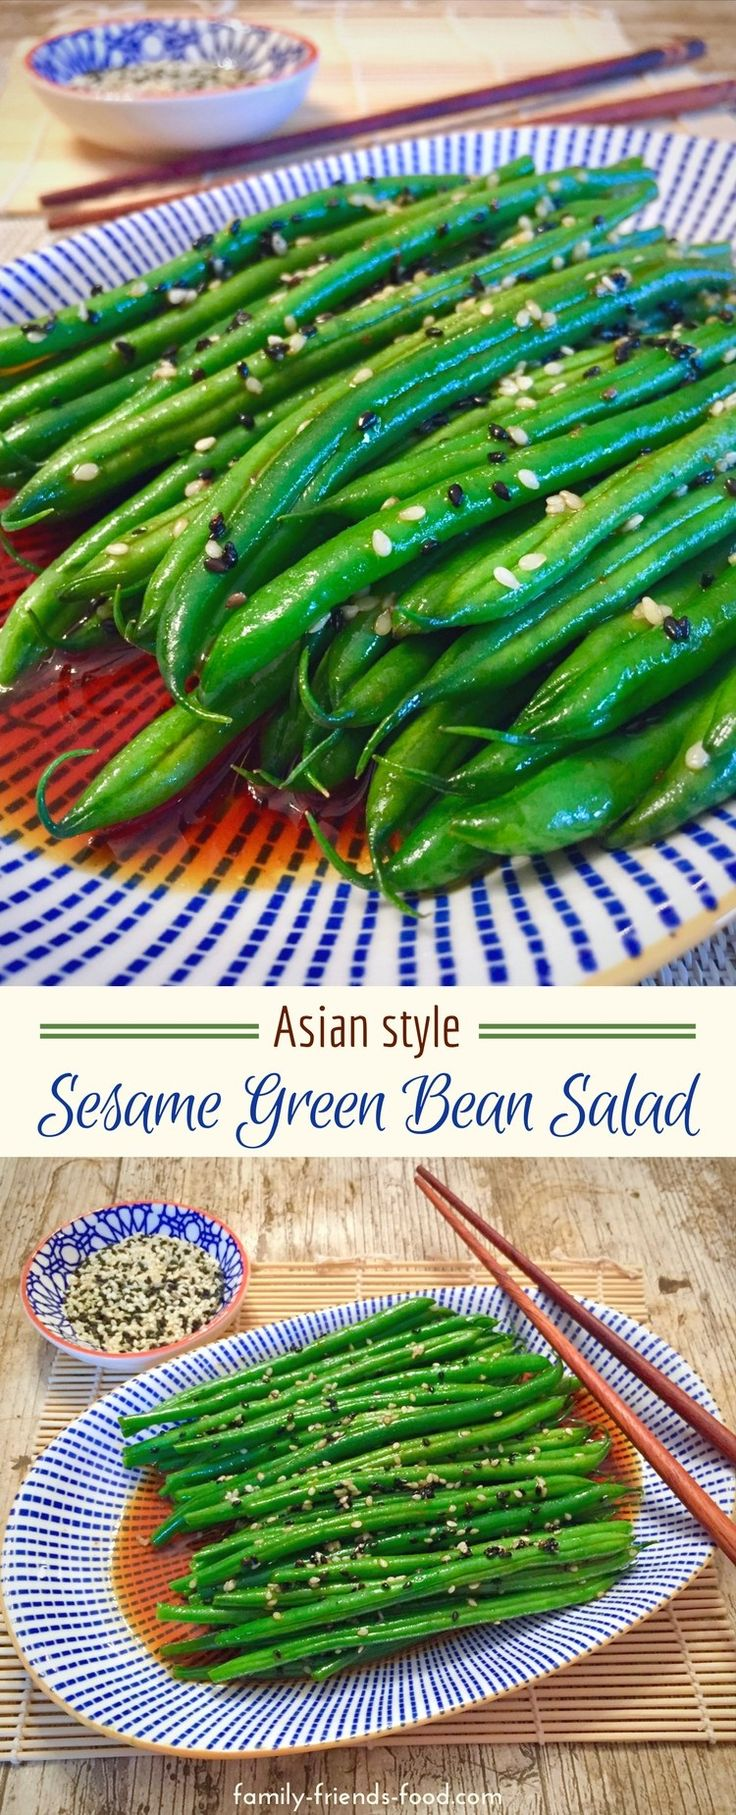 Crunchy sesame seeds cling to crisp-tender green beans, in a sweet, spicy Asian-inspired dressing. A simple and delicious salad, packed with vitamins and minerals.  #parve #salad #sidedish #easyrecipe